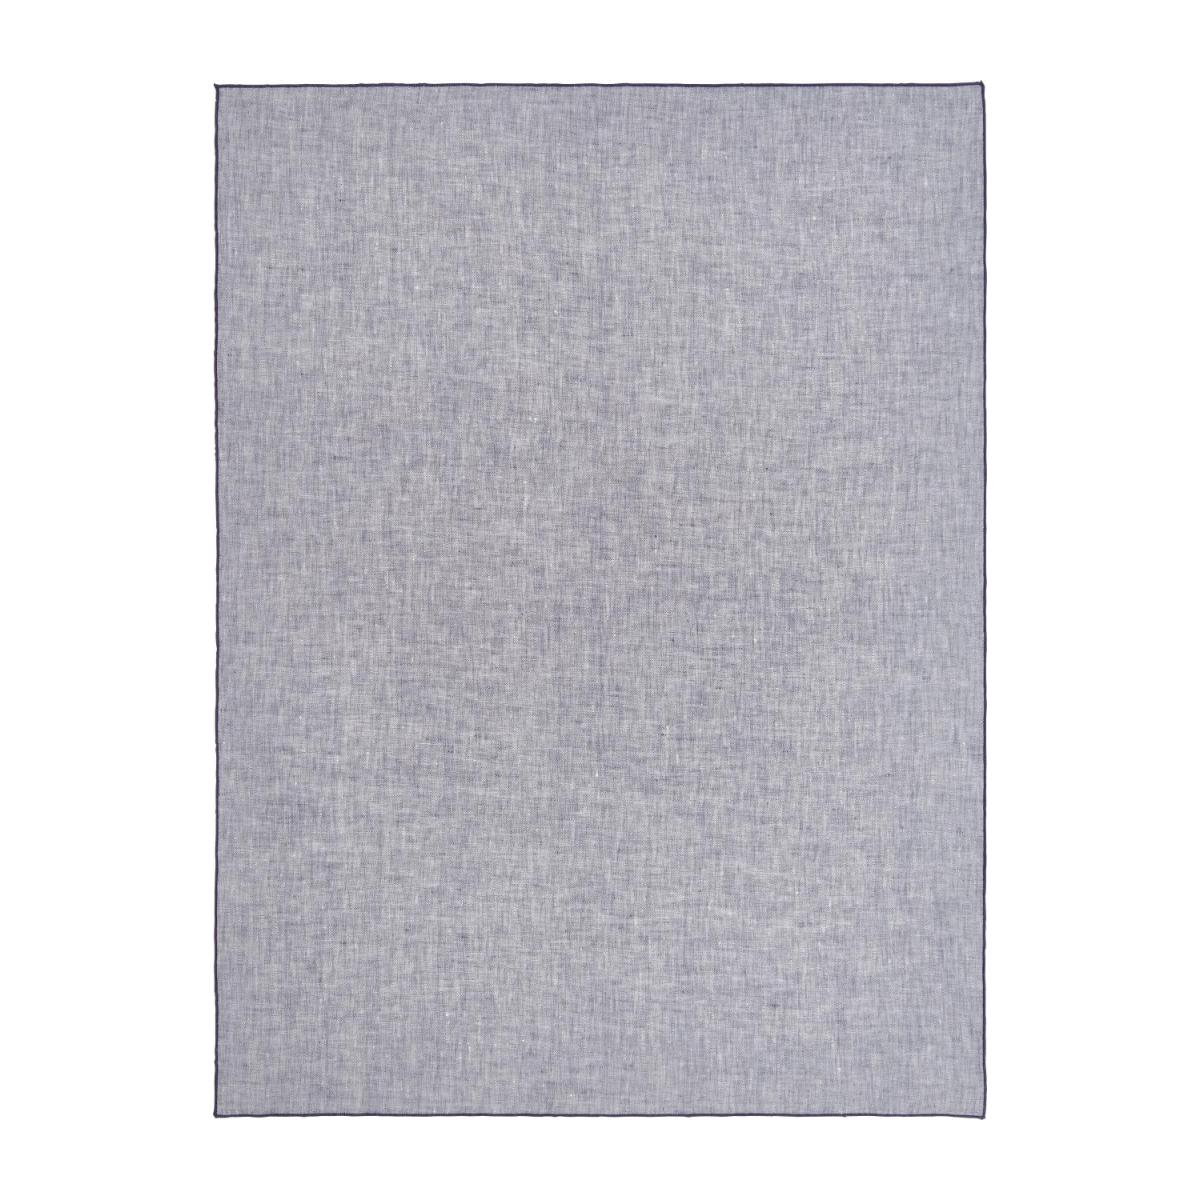 Kitchen towel 50x70cm made of flax, grey n°1